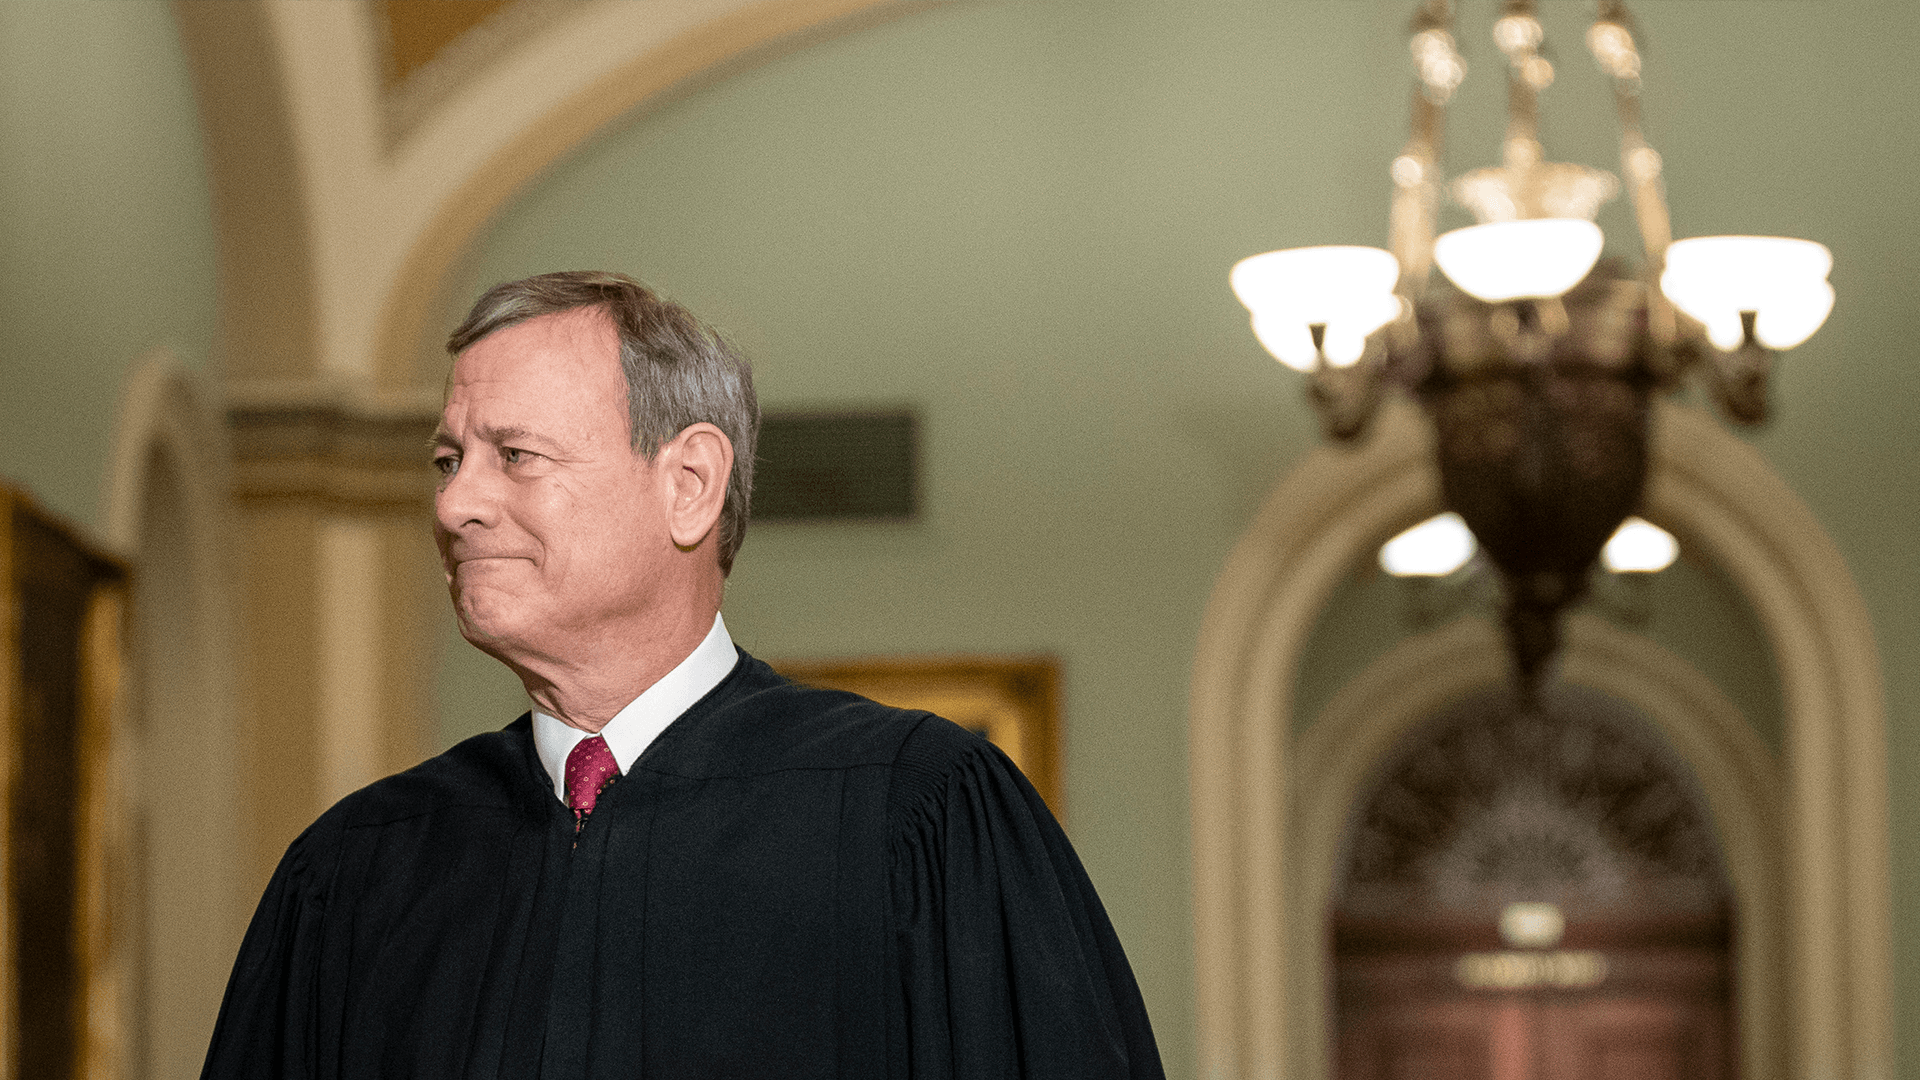 Chief Justice scolds House managers and WH counsel following an exchange of insults